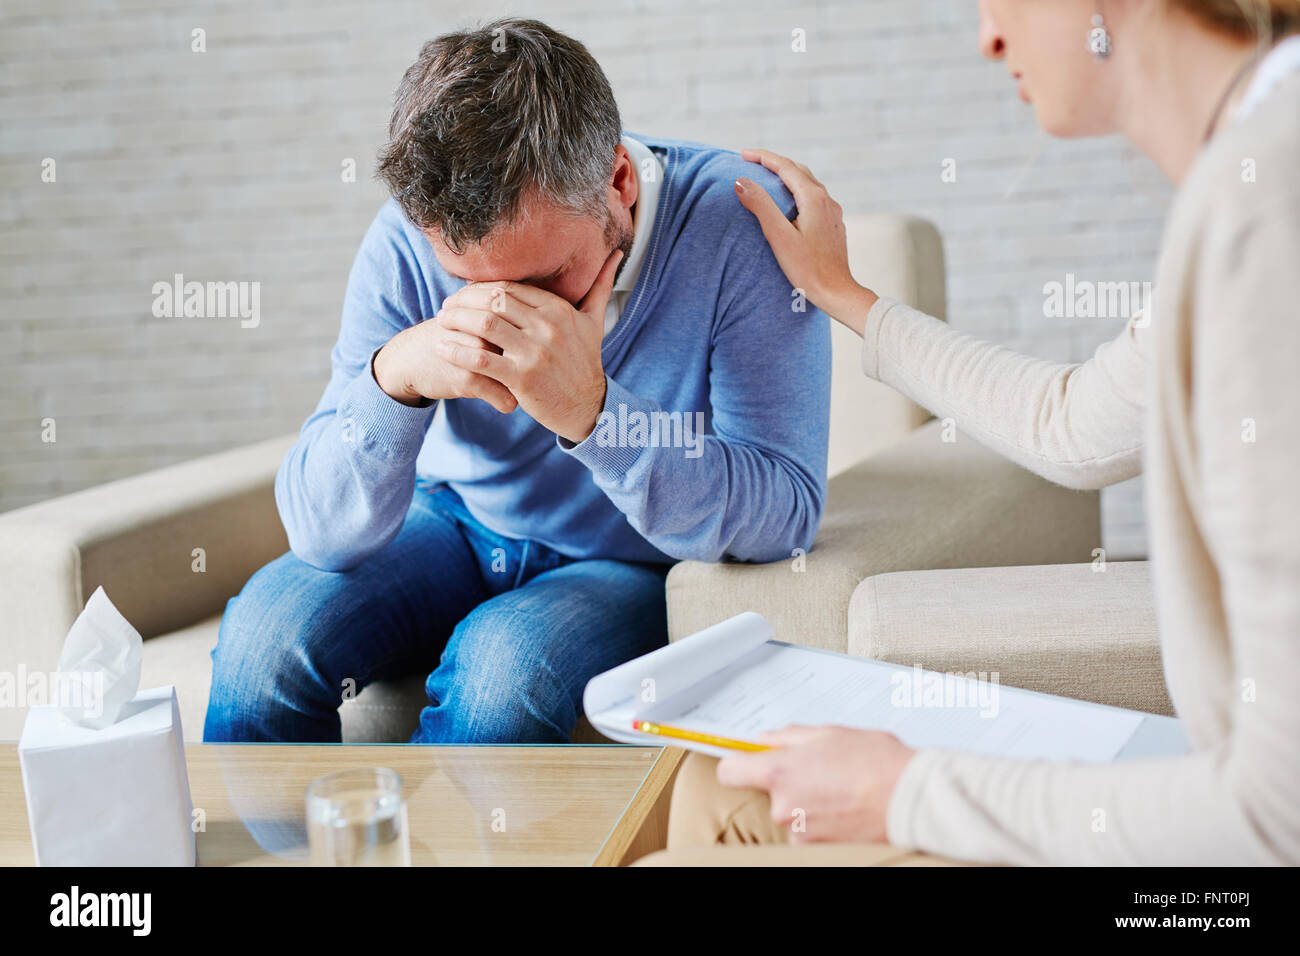 Hopeless man visiting psychologist - Stock Image